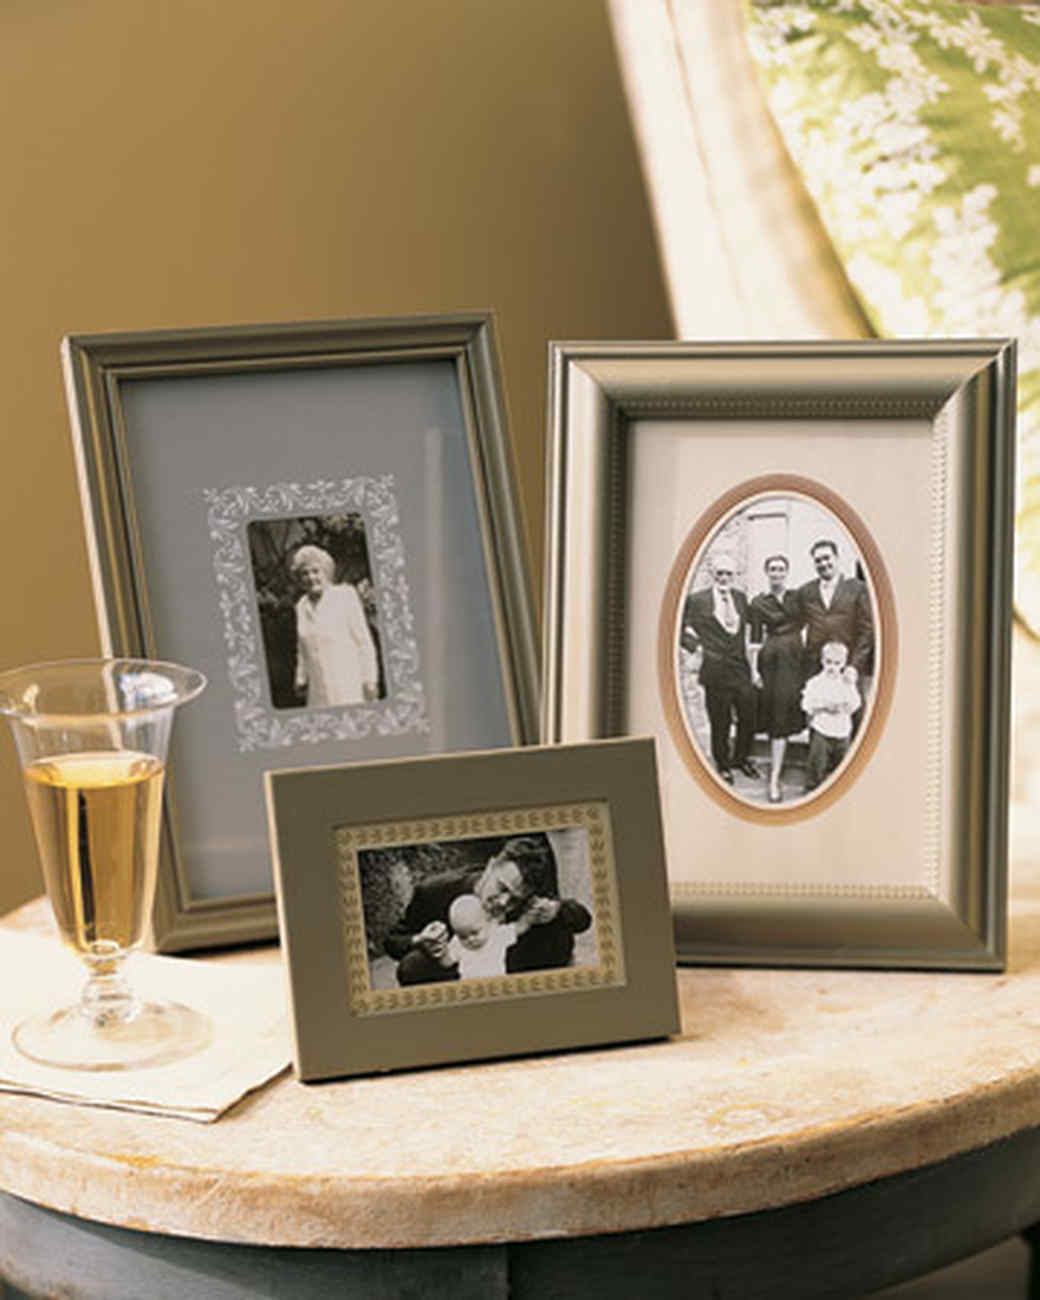 jacquelinesdoublematframes miniatures jacqueline minipix mats double s photograph dmg mini mat and frames goliath by fv